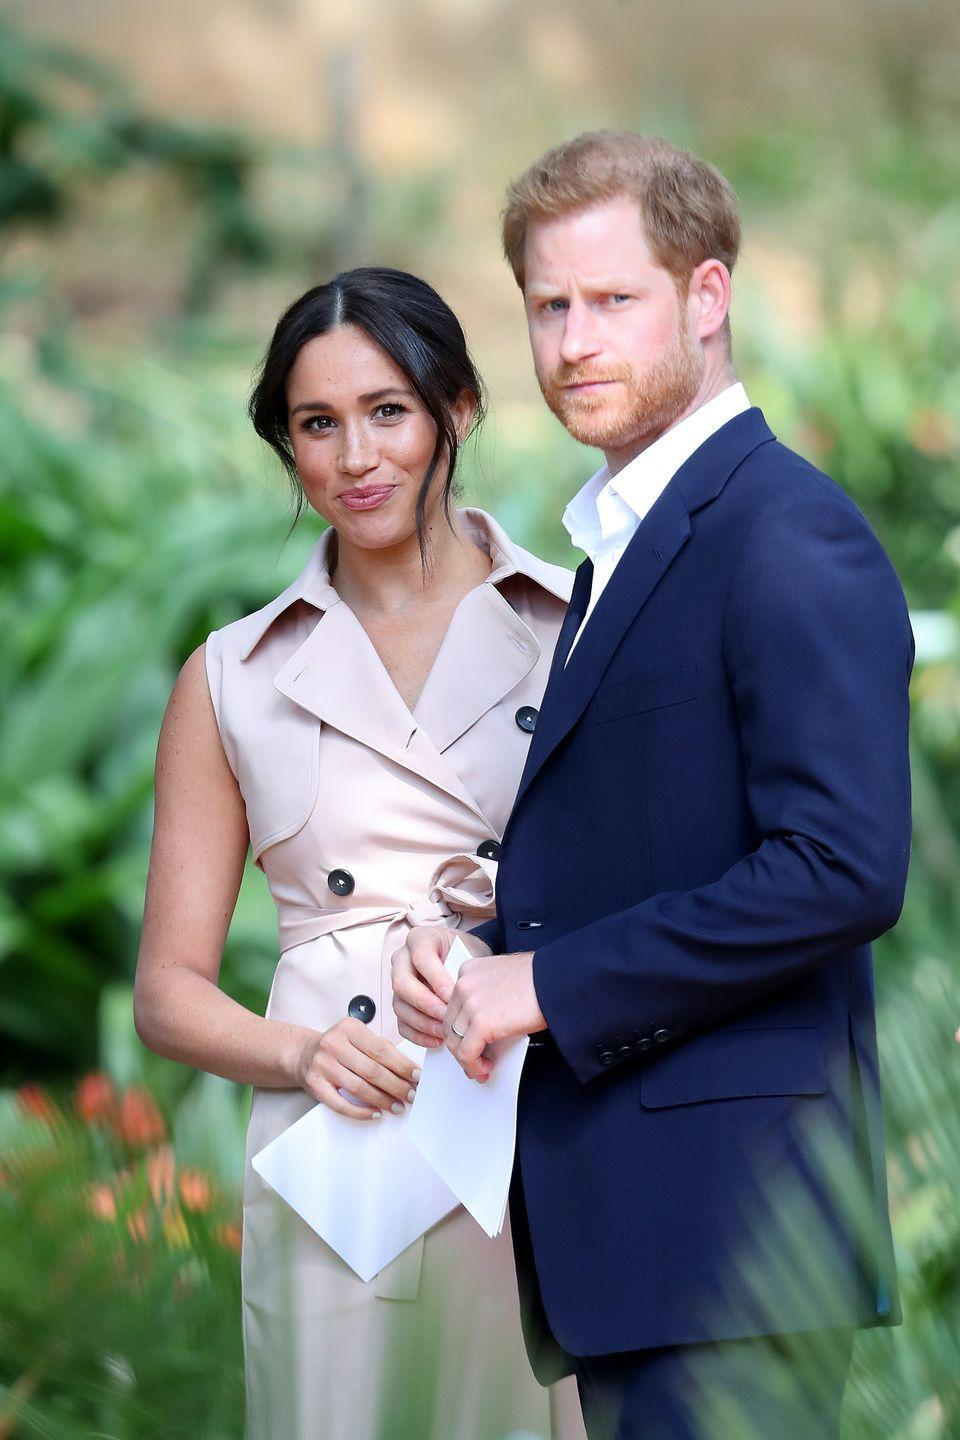 """<p>Meghan and Harry's second child, a <a href=""""https://www.harpersbazaar.com/celebrity/latest/a36492170/prince-harry-meghan-markle-welcome-baby-girl/"""" rel=""""nofollow noopener"""" target=""""_blank"""" data-ylk=""""slk:daughter named Lilibet &quot;Lili&quot; Diana"""" class=""""link rapid-noclick-resp"""">daughter named Lilibet """"Lili"""" Diana</a>, comes in at eighth in line to the throne.</p>"""